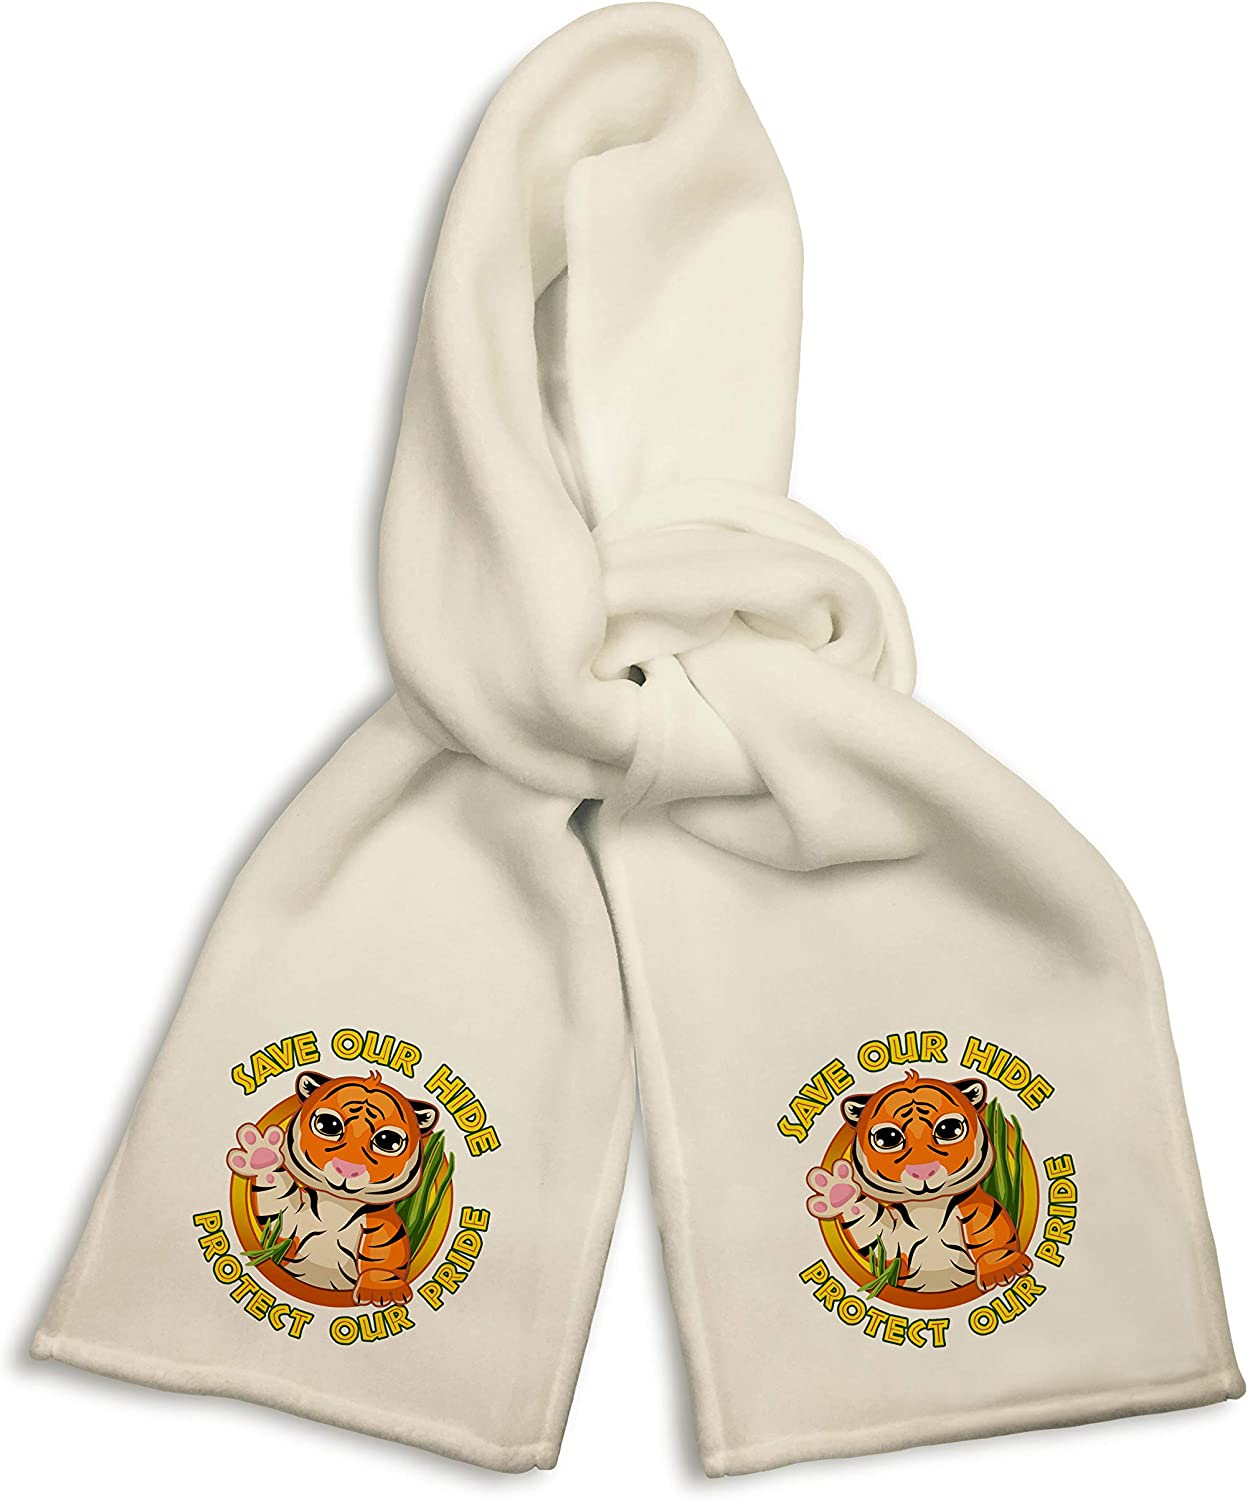 White Winter Scarf - Save Our Hide Protect Our Pride Tiger Conservation